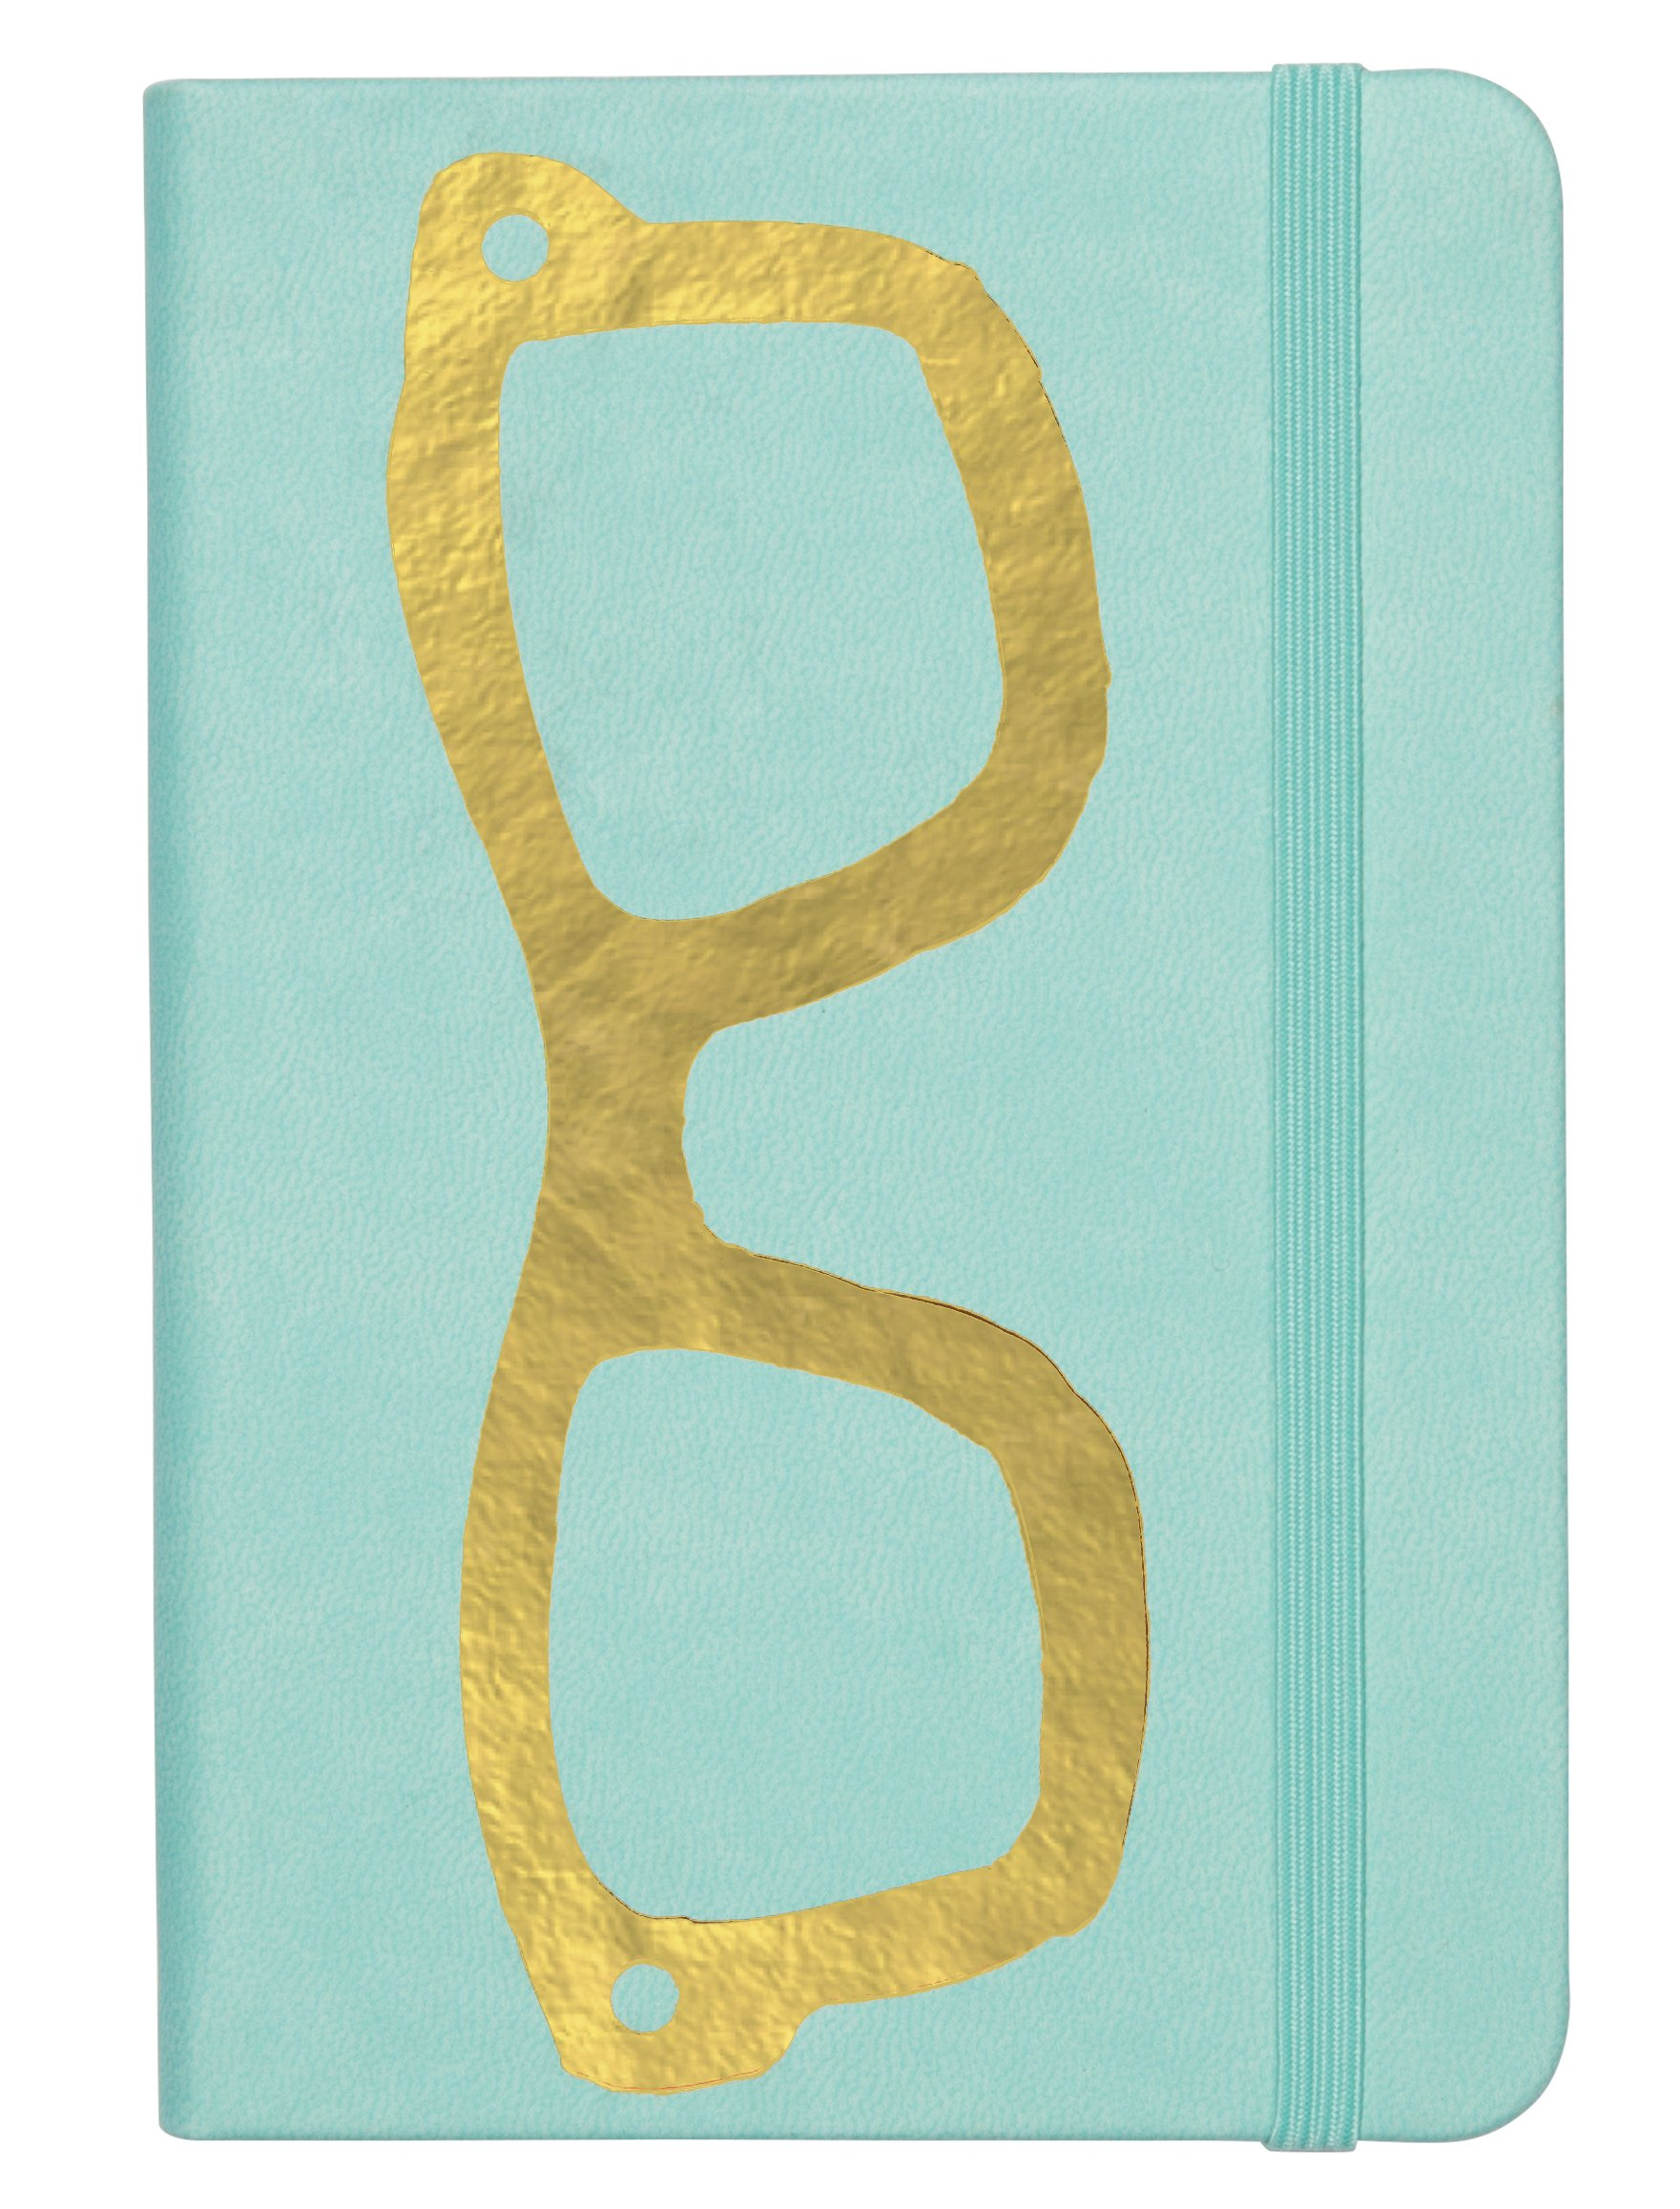 C.R. Gibson Password Log Book, Space for 576 entries, 3 entries per page, Measures 3.5'' x 5.5'' - Glasses